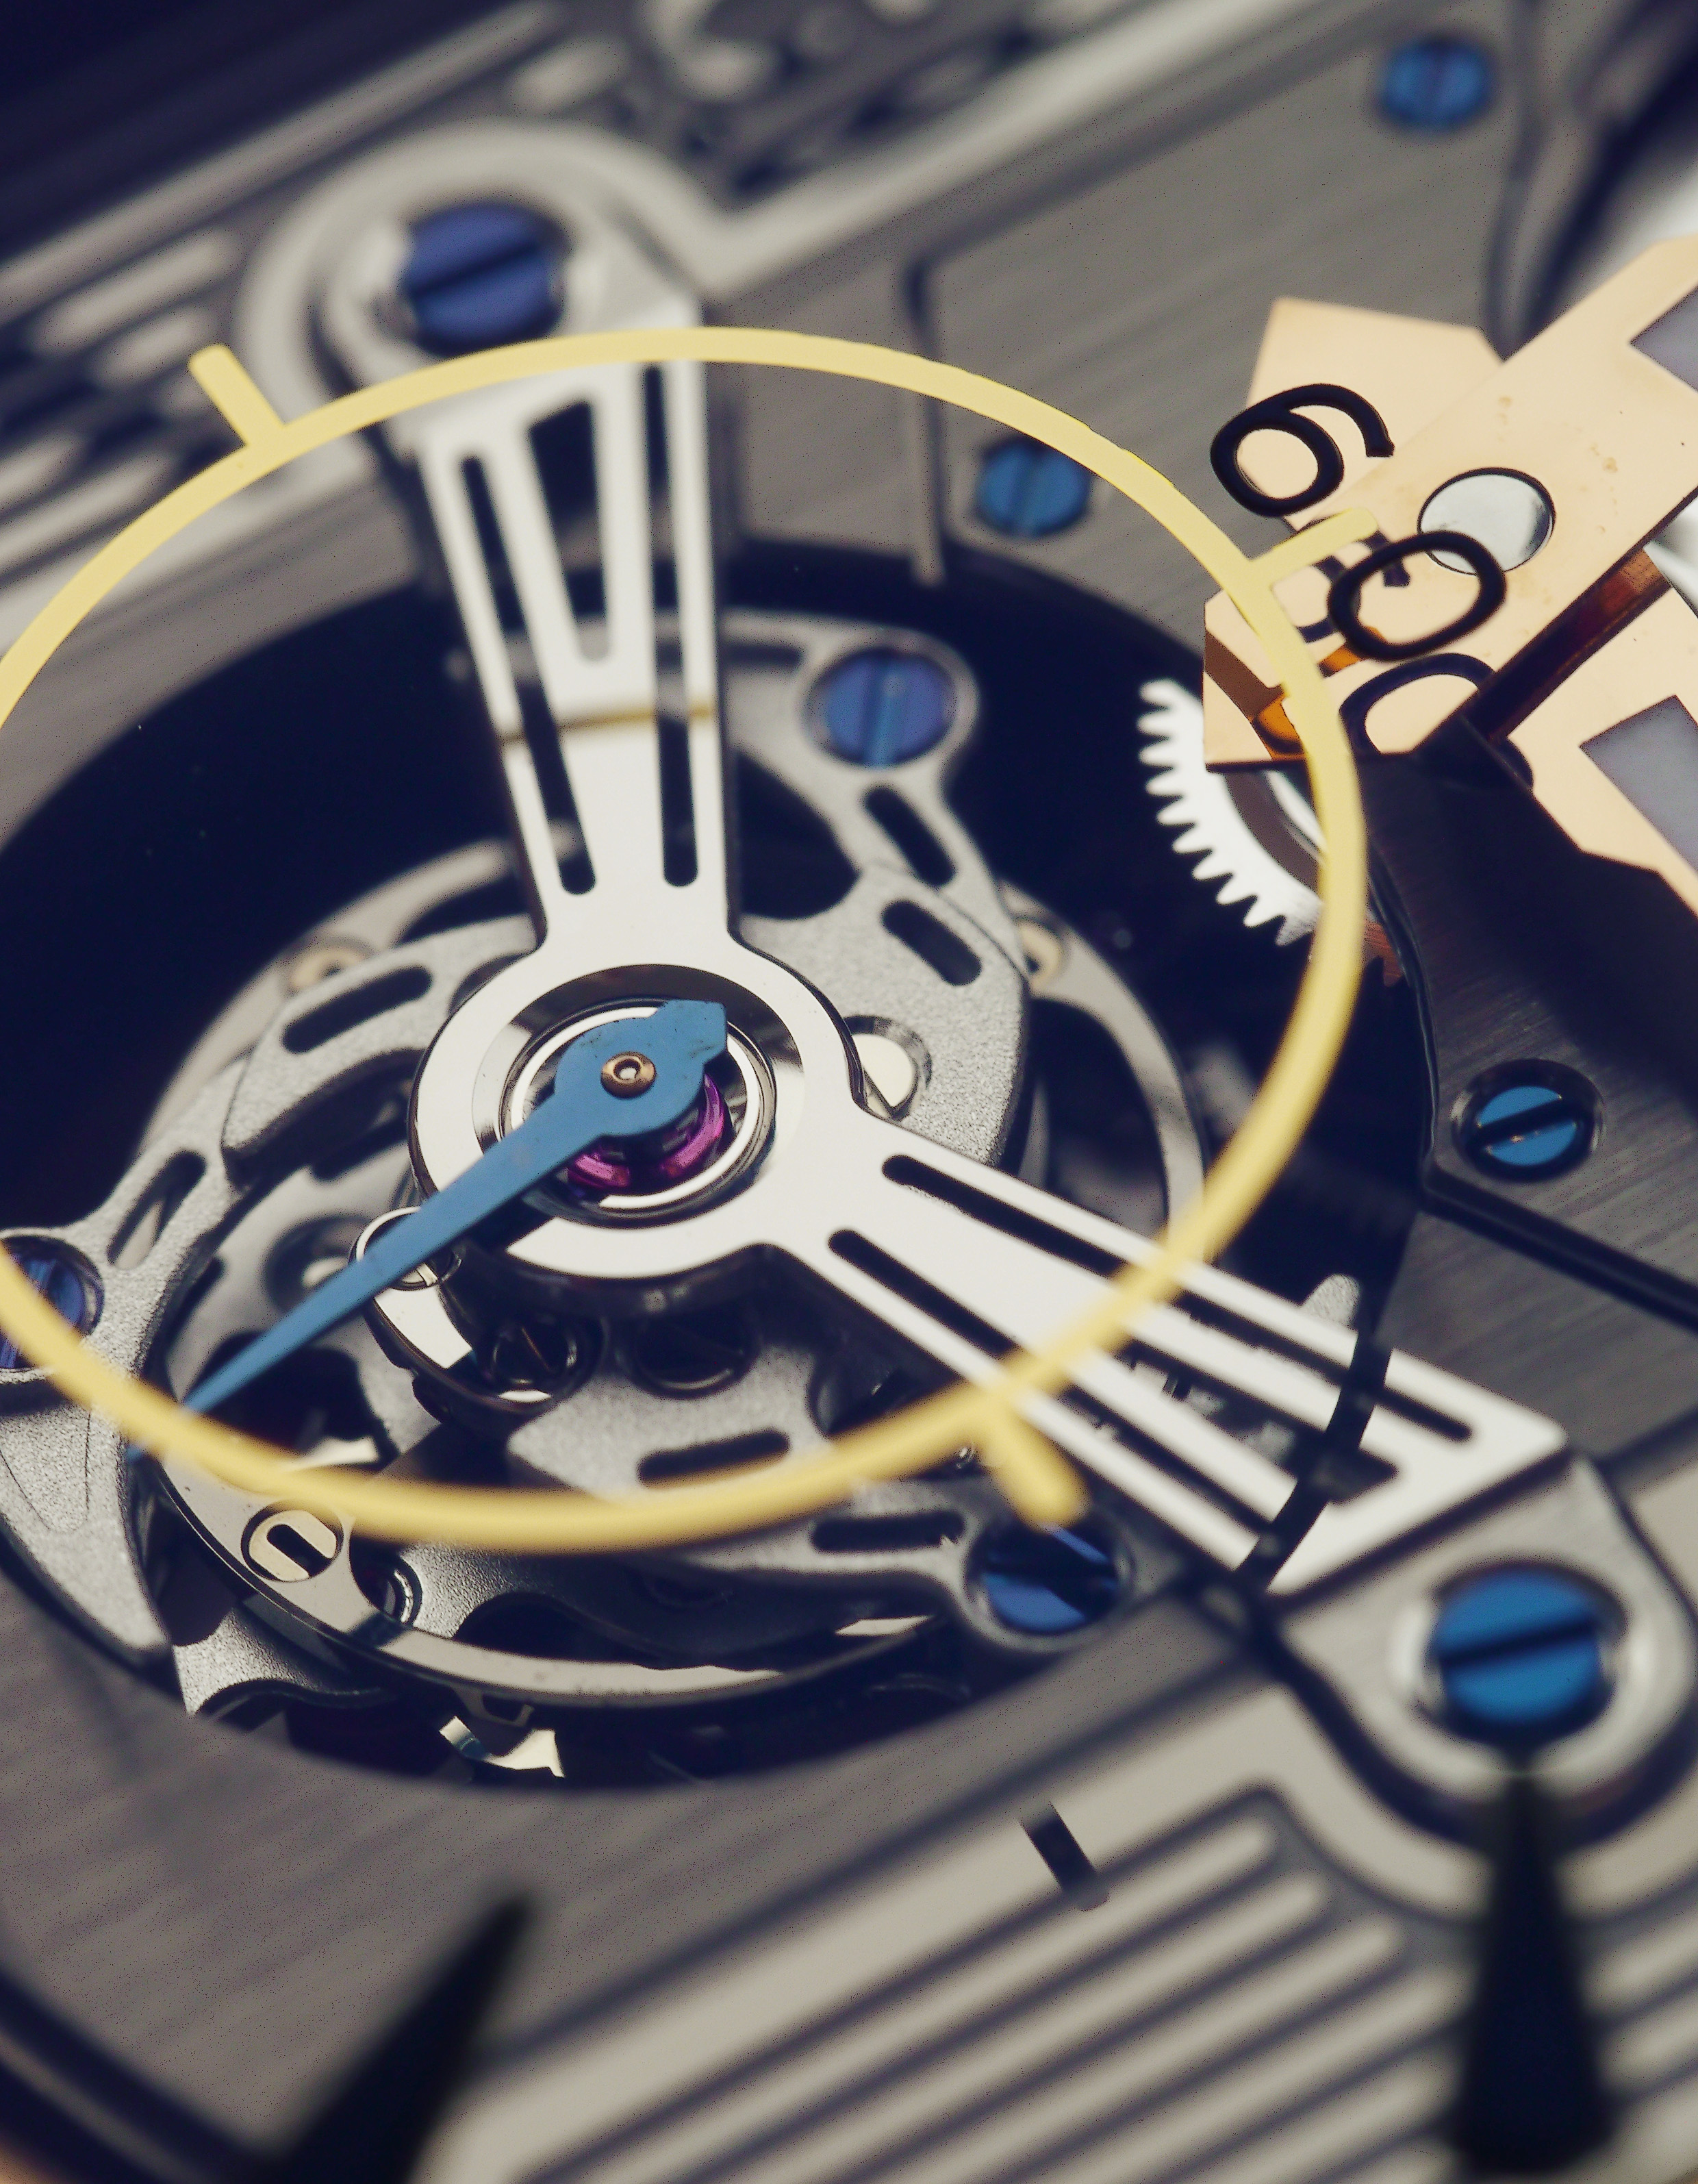 The main star of the timepiece- the Tourbillon. This one is a little special; it looks rather modern actually.